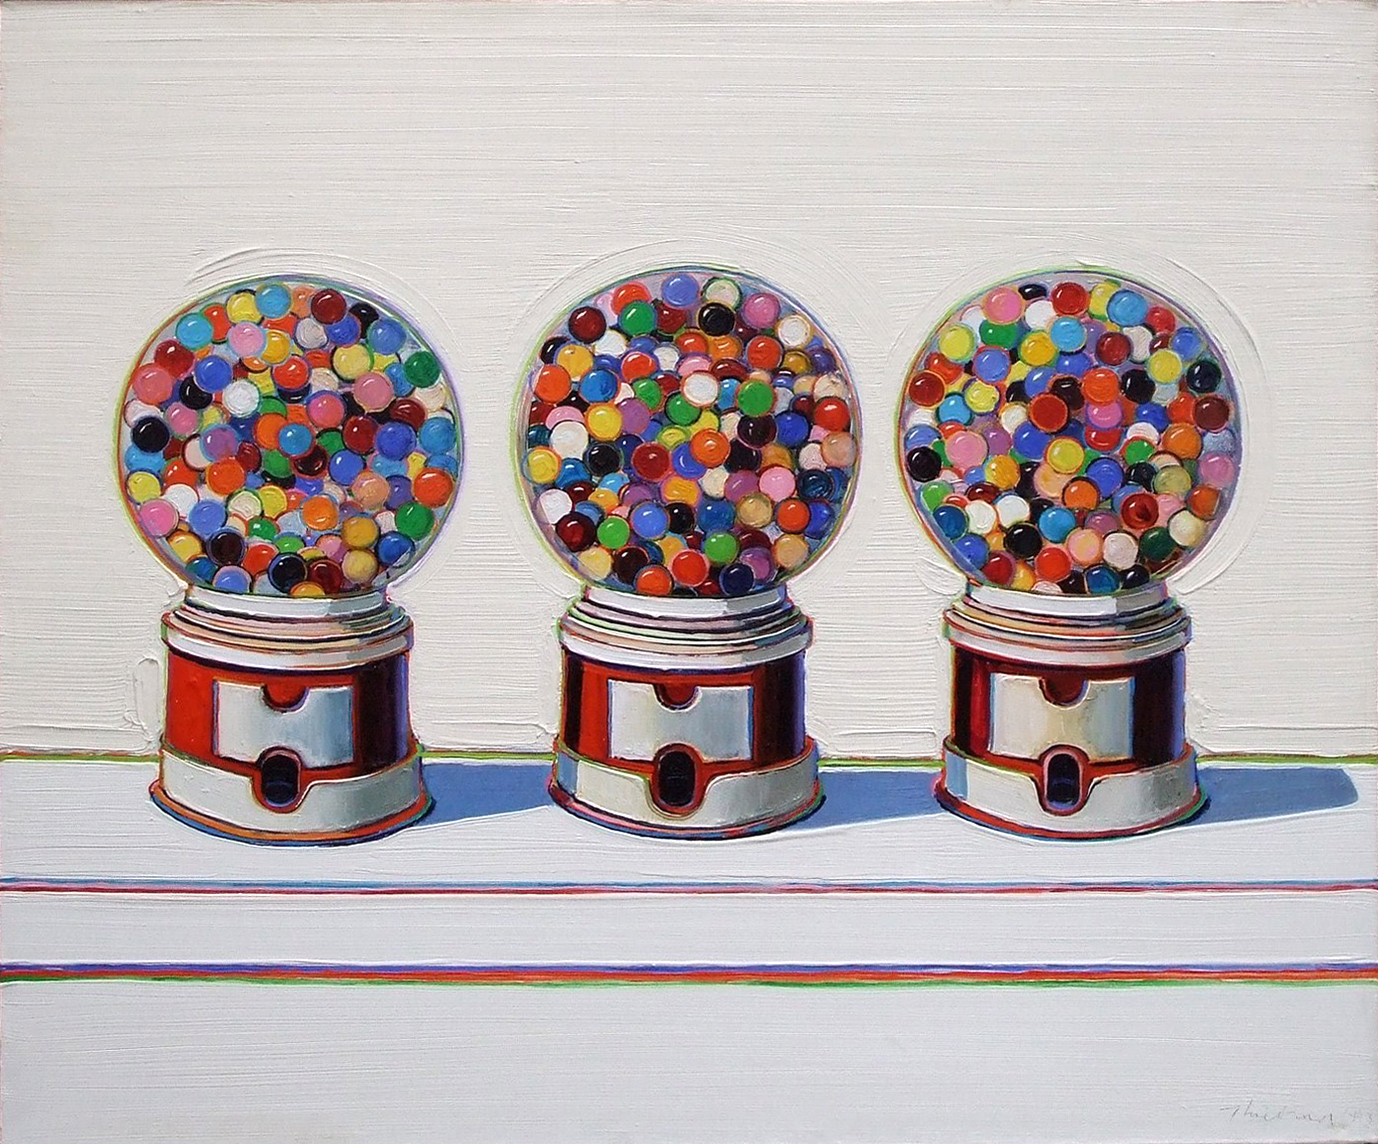 waynethiebaud_gumball_machine